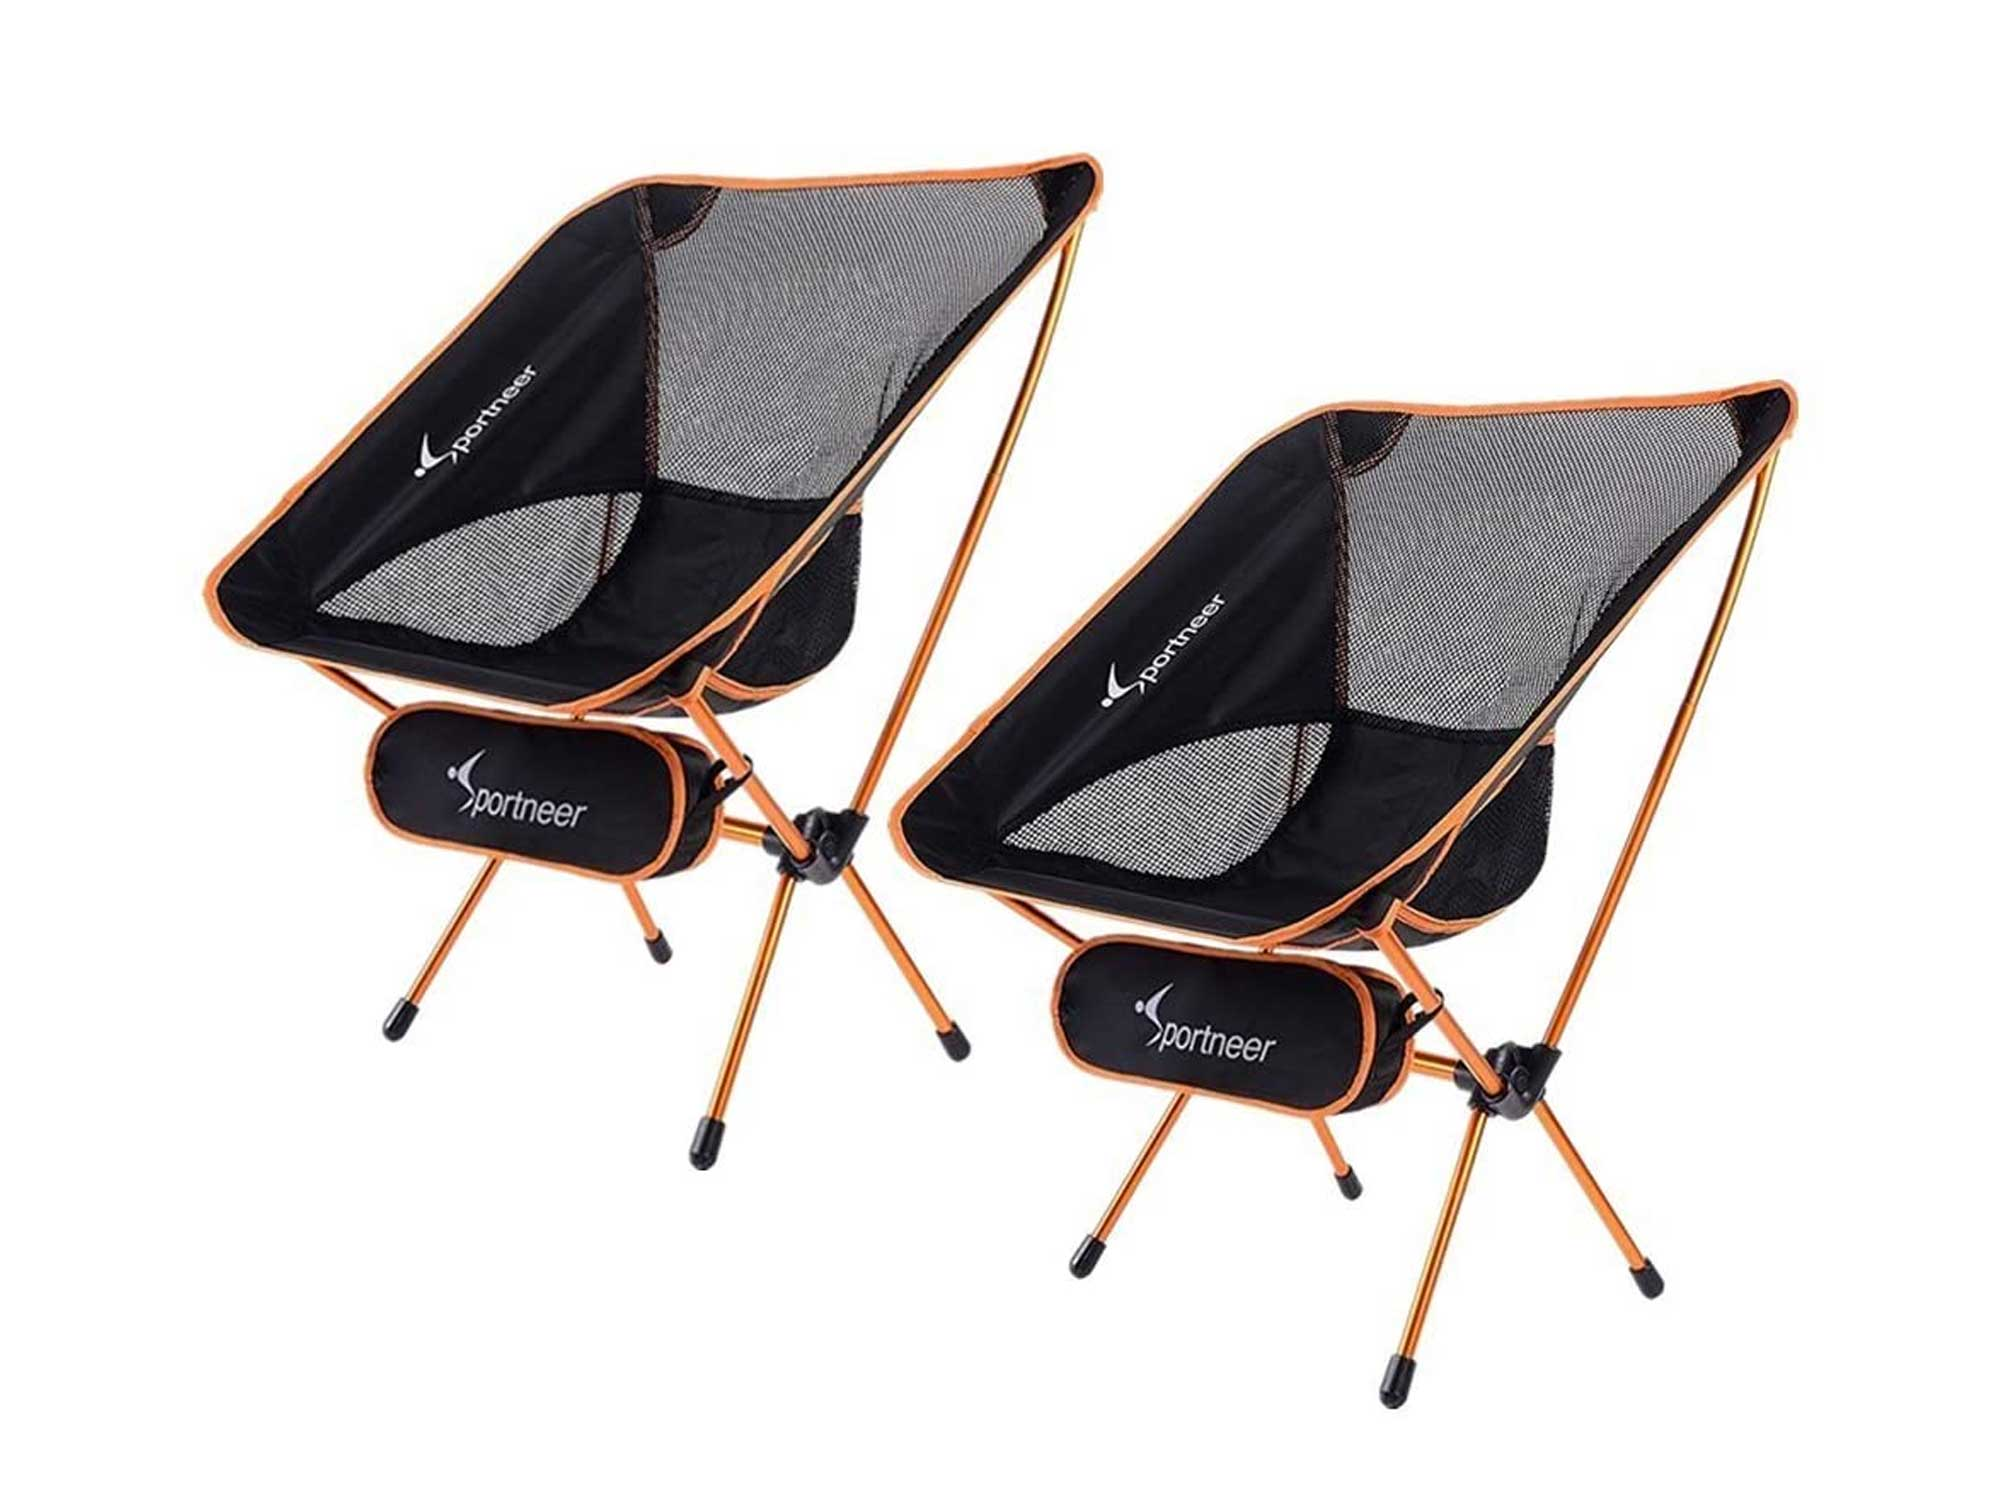 Sportneer Camping Chairs, Portable Ultralight Folding Camp Chair with Carry Bag